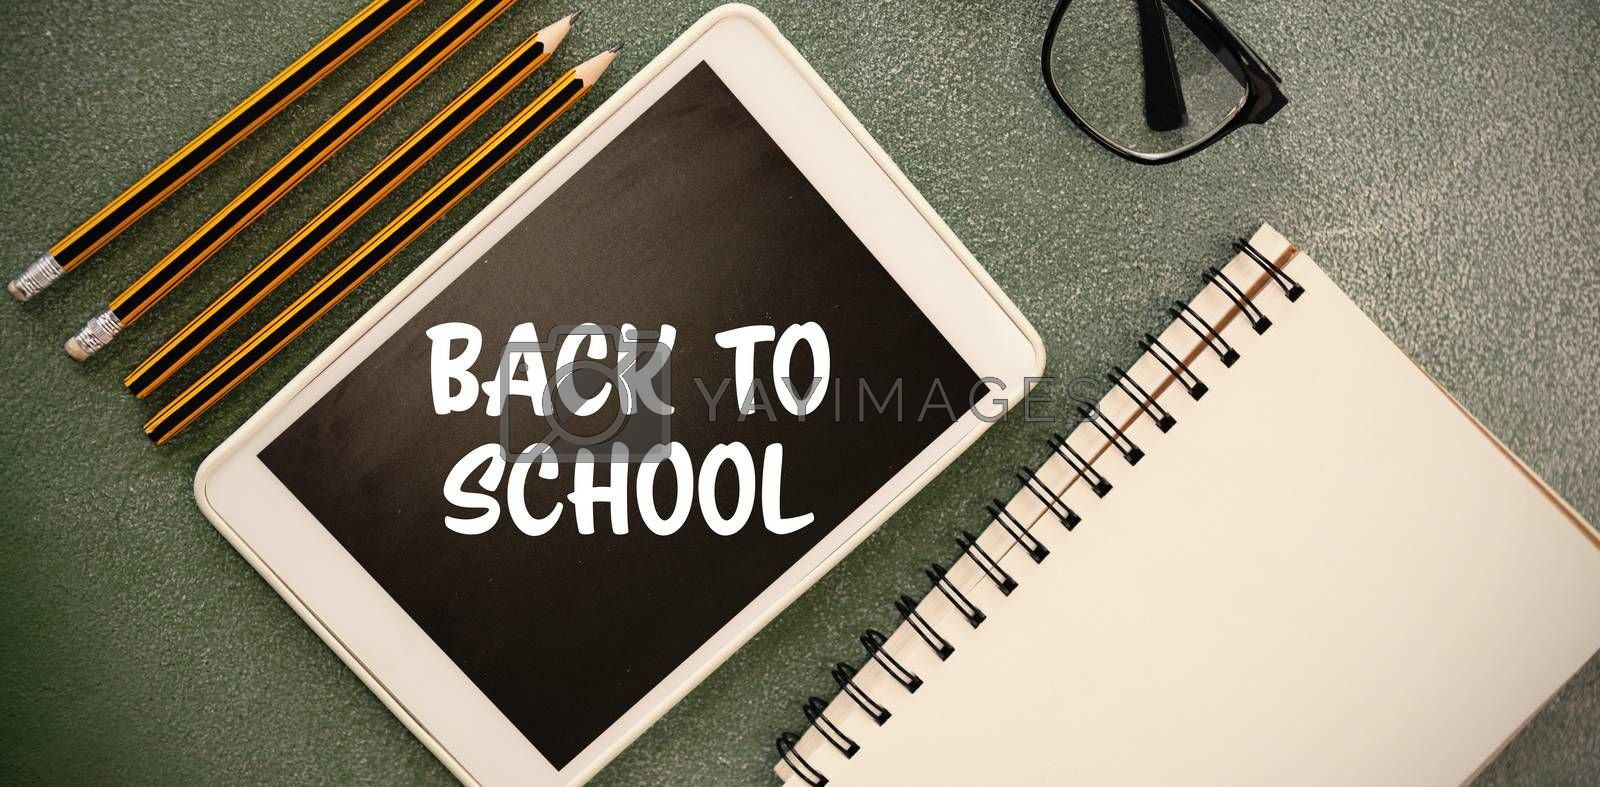 Composite image of back to school text on white background by Wavebreakmedia